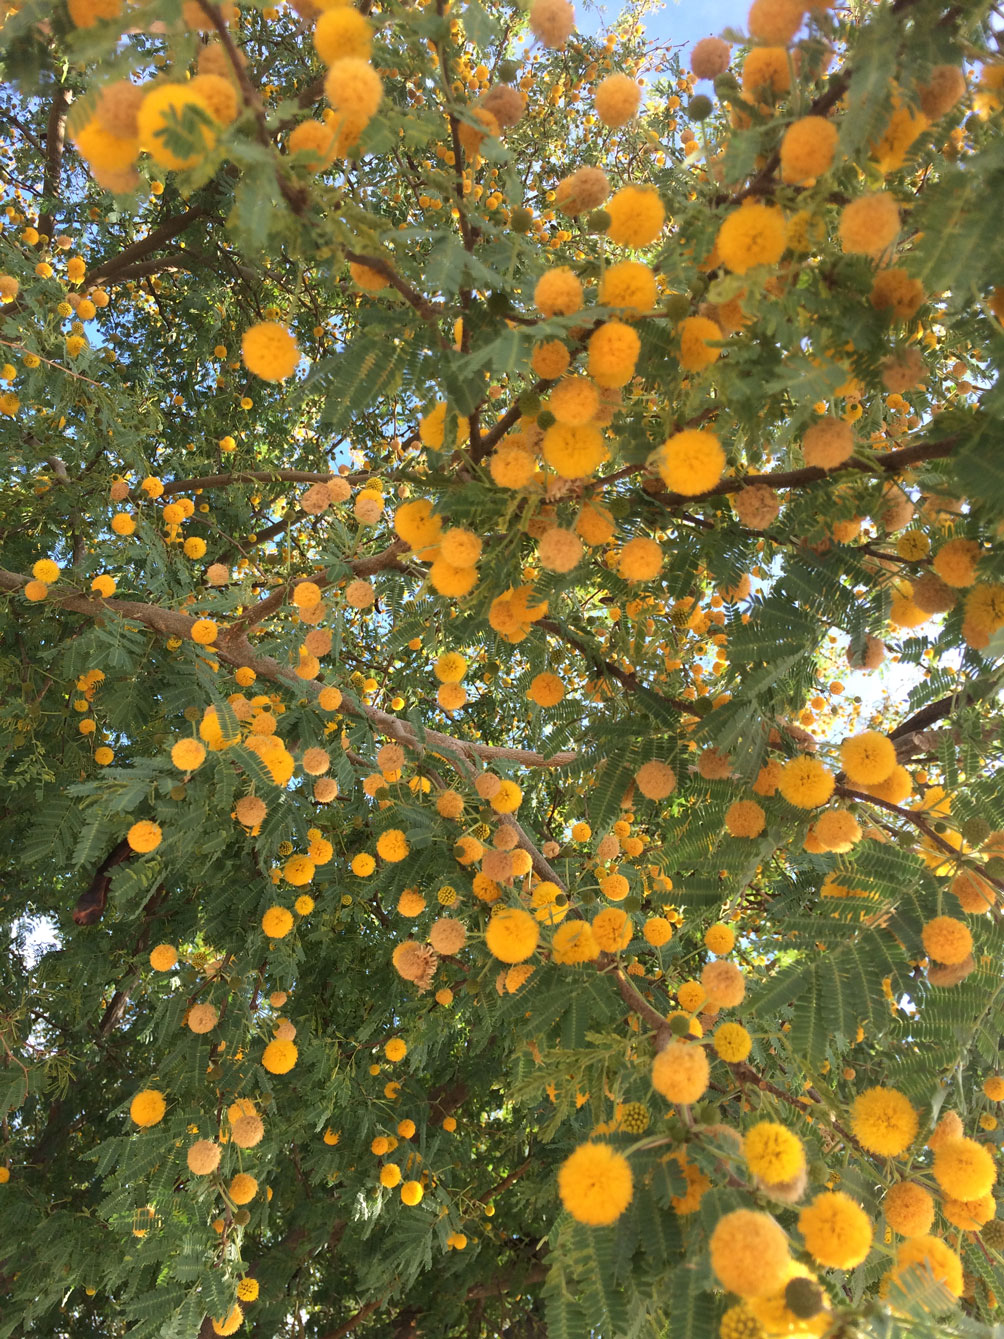 A close-up of the orange ball-like flowers of the Sweet Acacia.